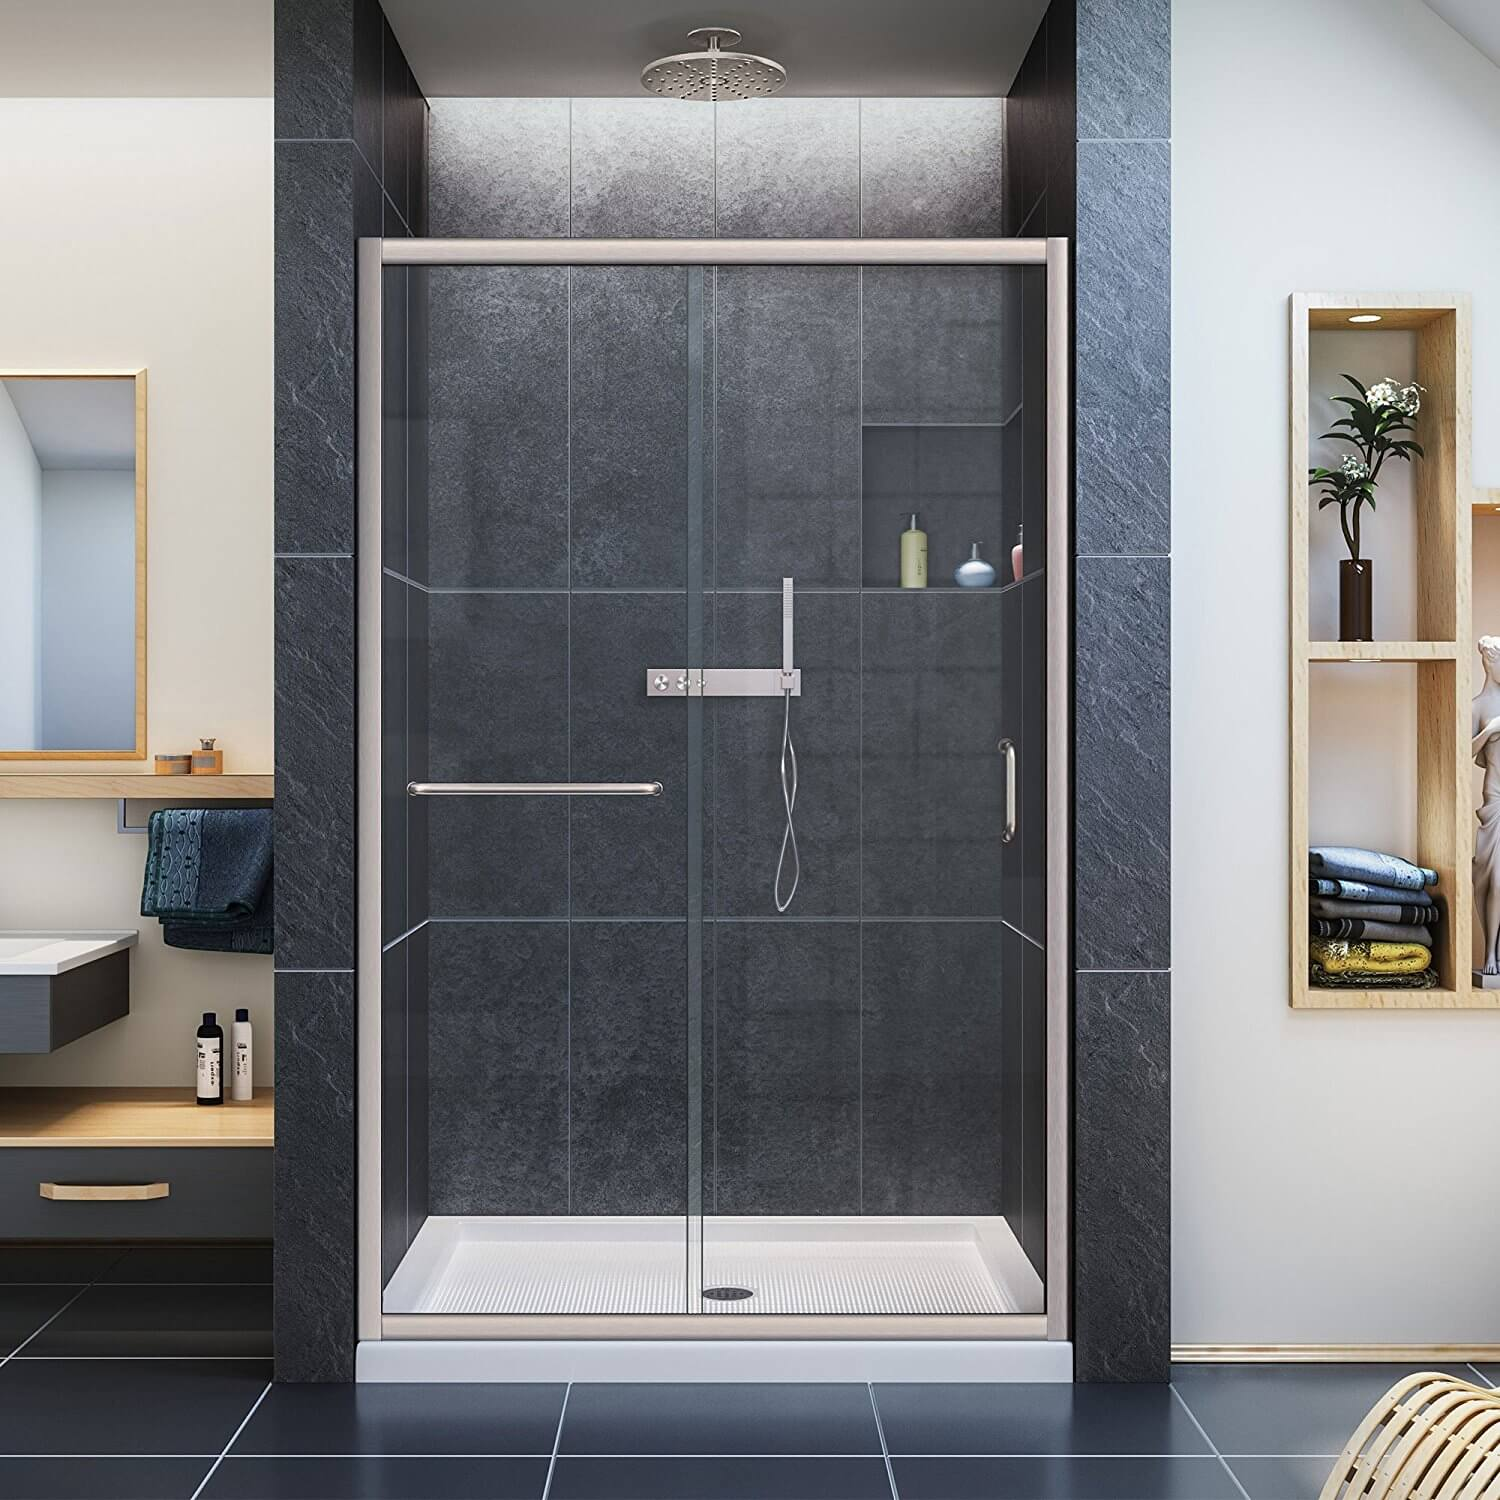 Recommended] Best Sliding Shower Door | Reviews & Guide